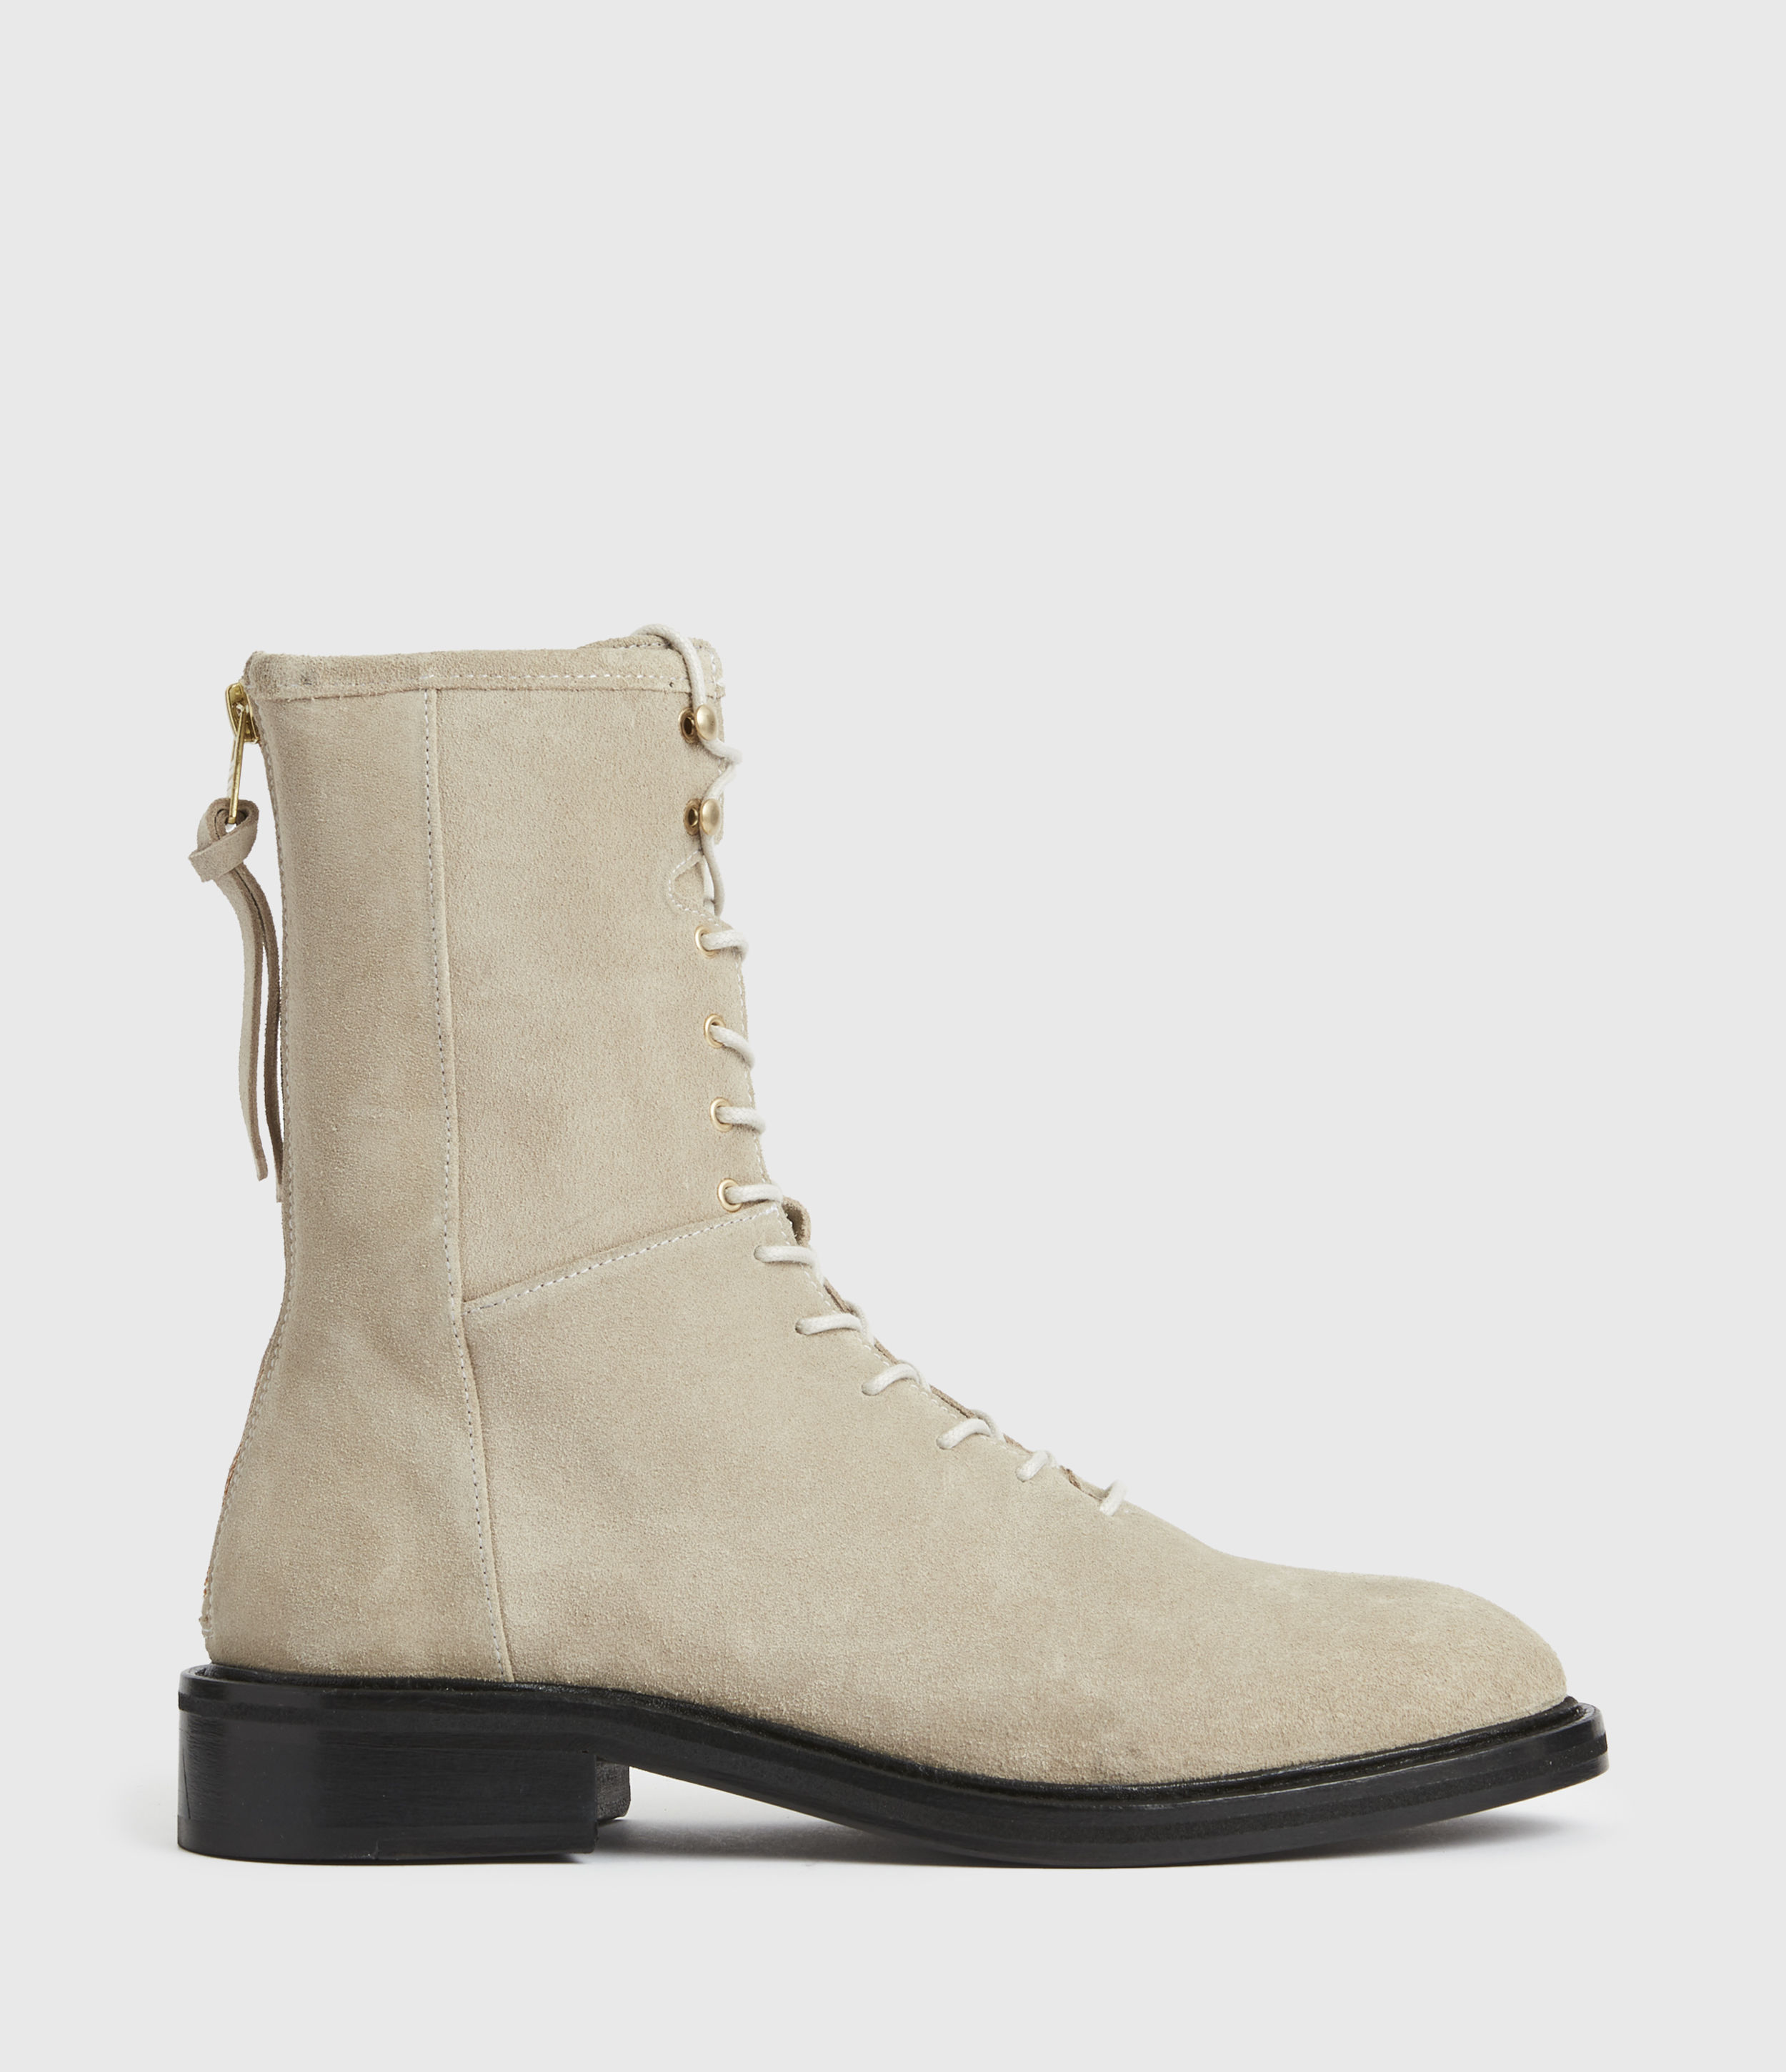 AllSaints Womens Misty Suede Boots, Summer Taupe, Size: UK 5/US 7/EU 38